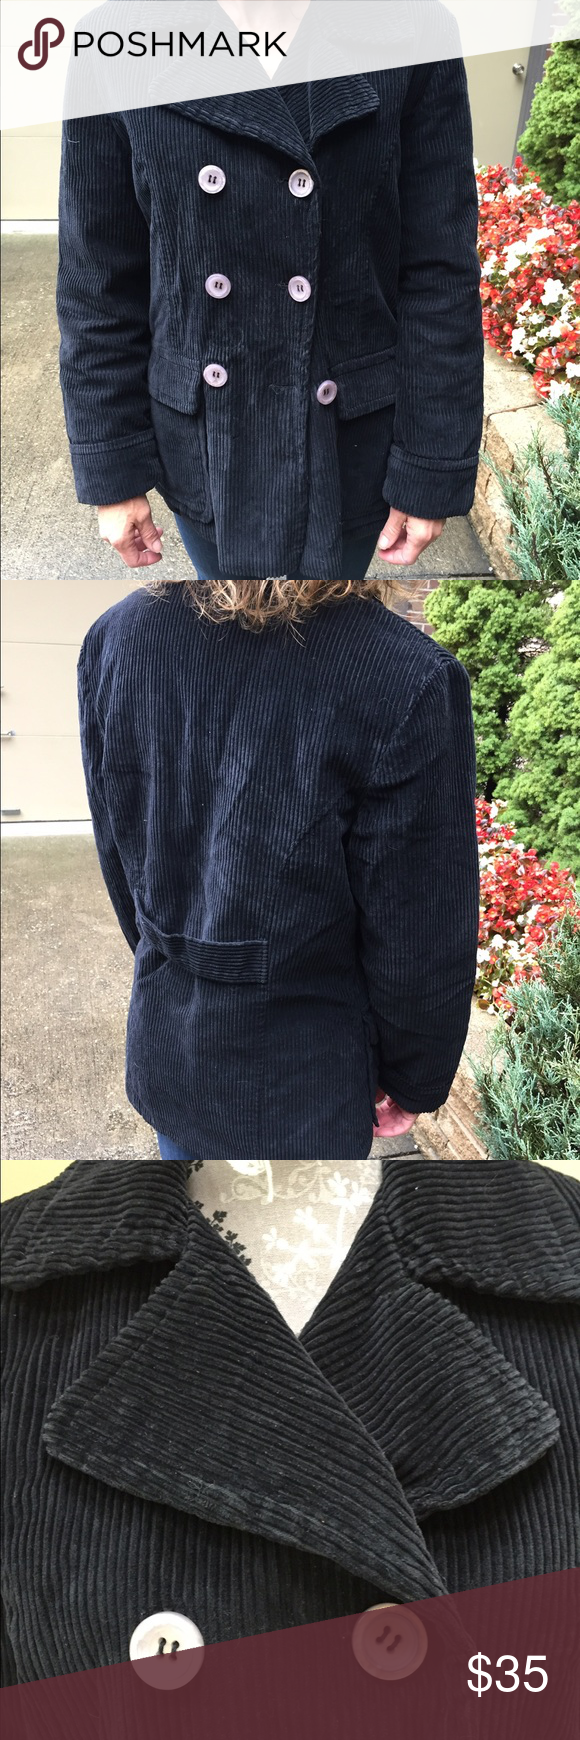 Free People black corduroy coat Free people black corduroy coat. Excellent condition.  Quilted lining.  Size small. Pockets in the front. Great for fall! Free People Jackets & Coats Pea Coats